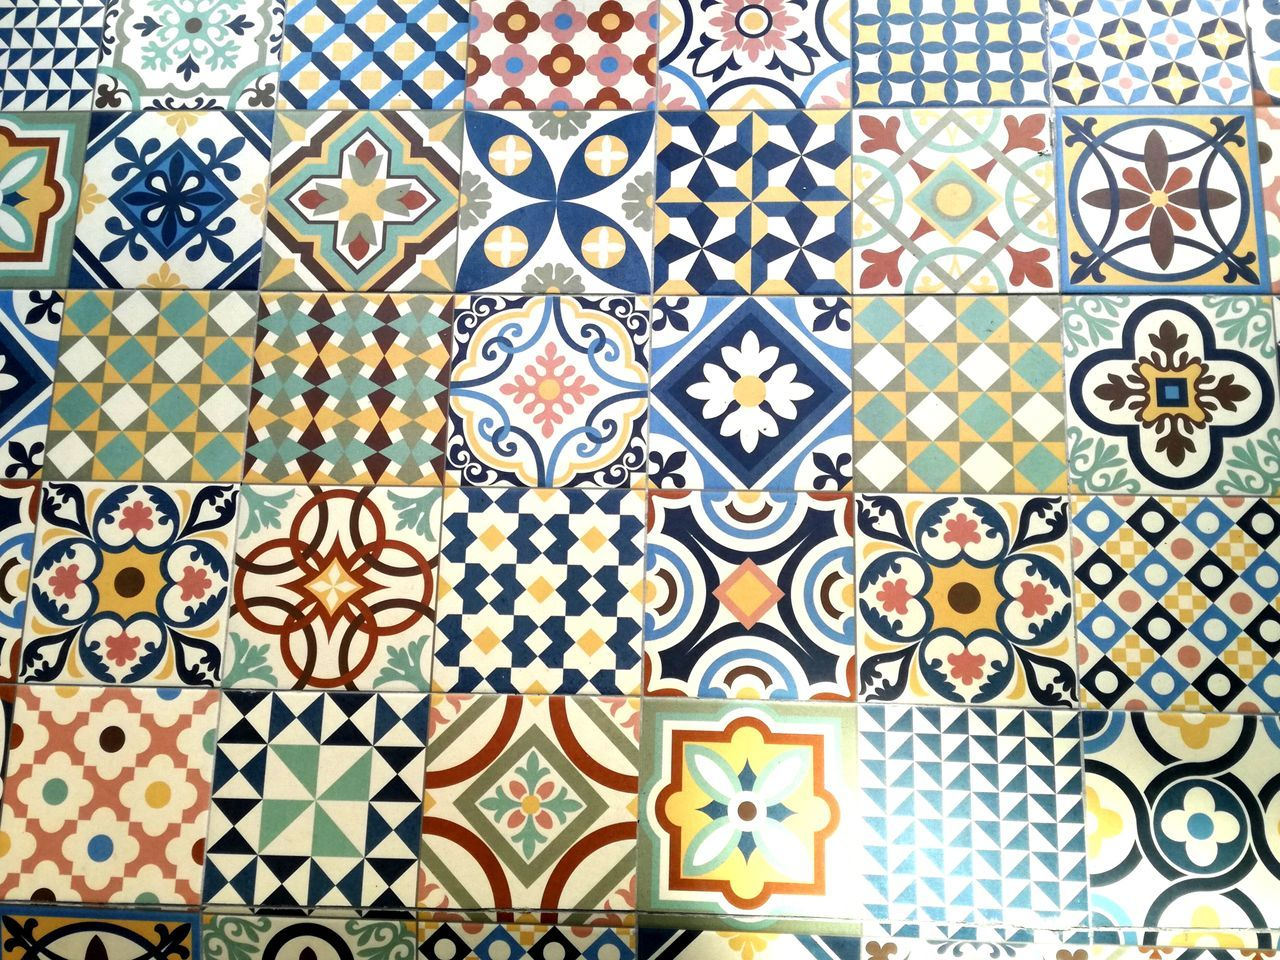 Pattern Design Full Frame Art And Craft Mosaic Backgrounds Seamless Pattern Tile Indoors  Multi Colored No People Close-up Day Azuleijos Azulejosportugueses Azulejos Porto Portugal Azules Portugal_em_fotos Portugal Is Beautiful